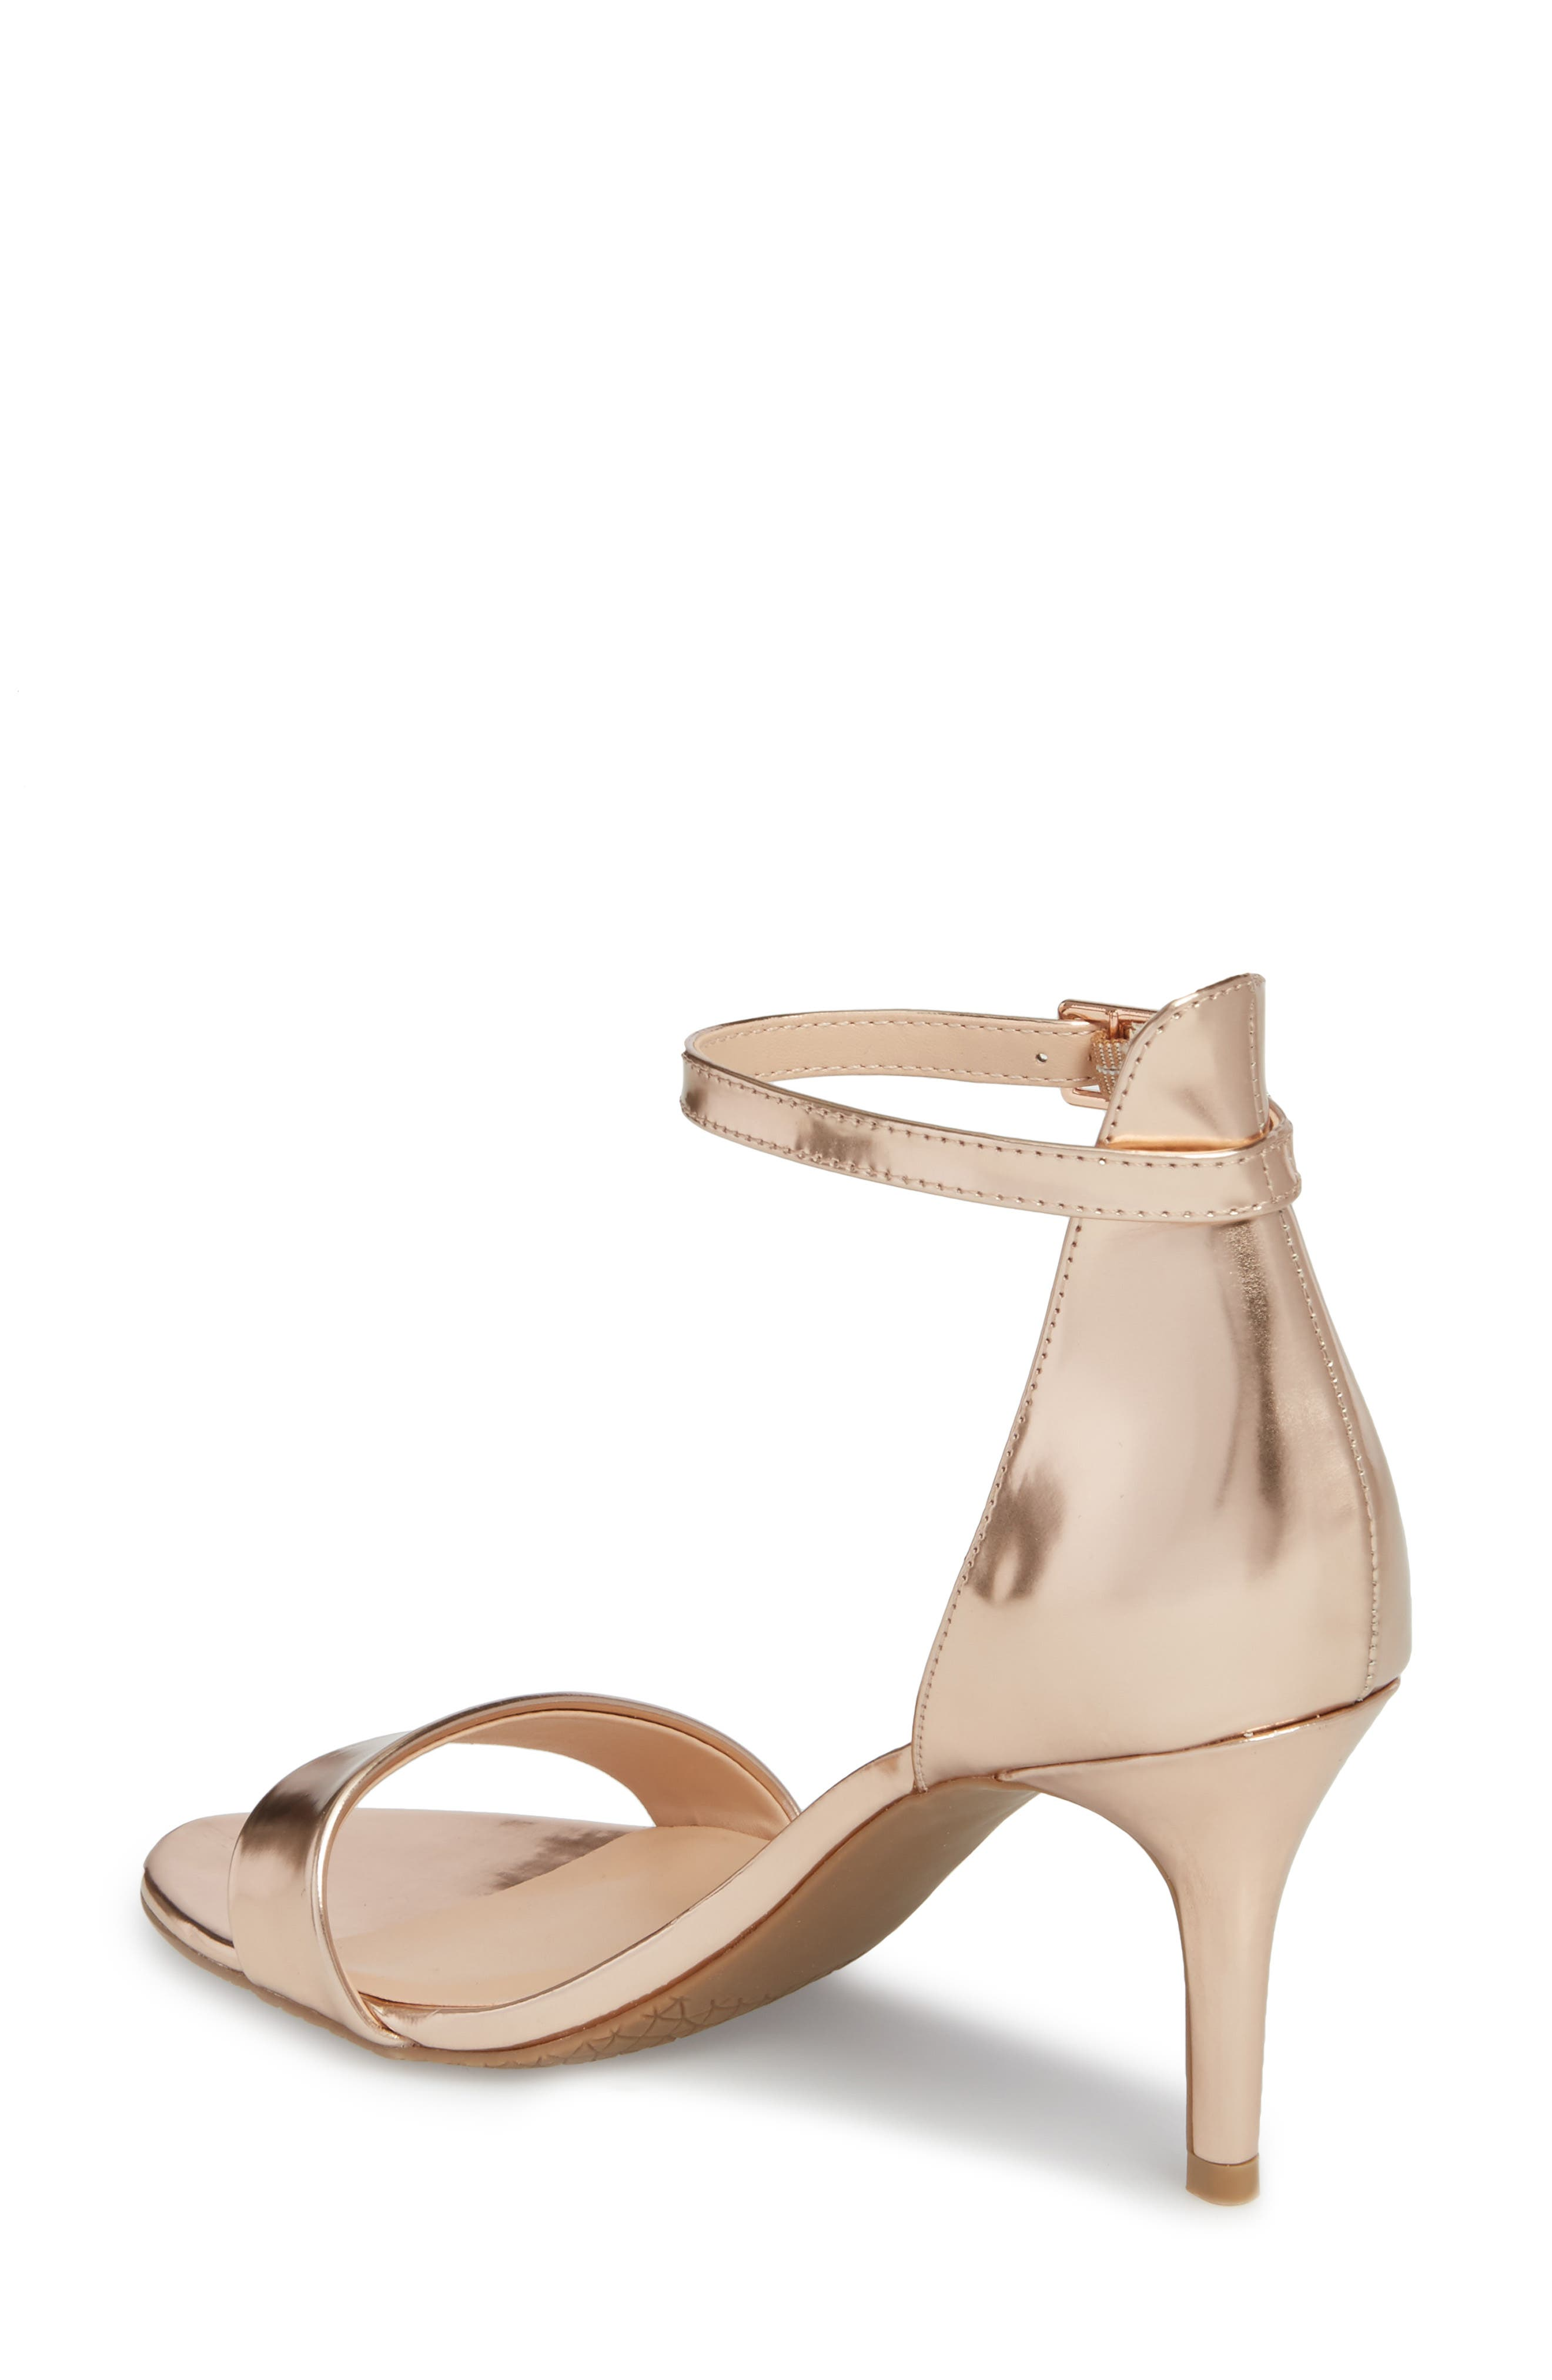 'Luminate' Open Toe Dress Sandal,                             Alternate thumbnail 60, color,